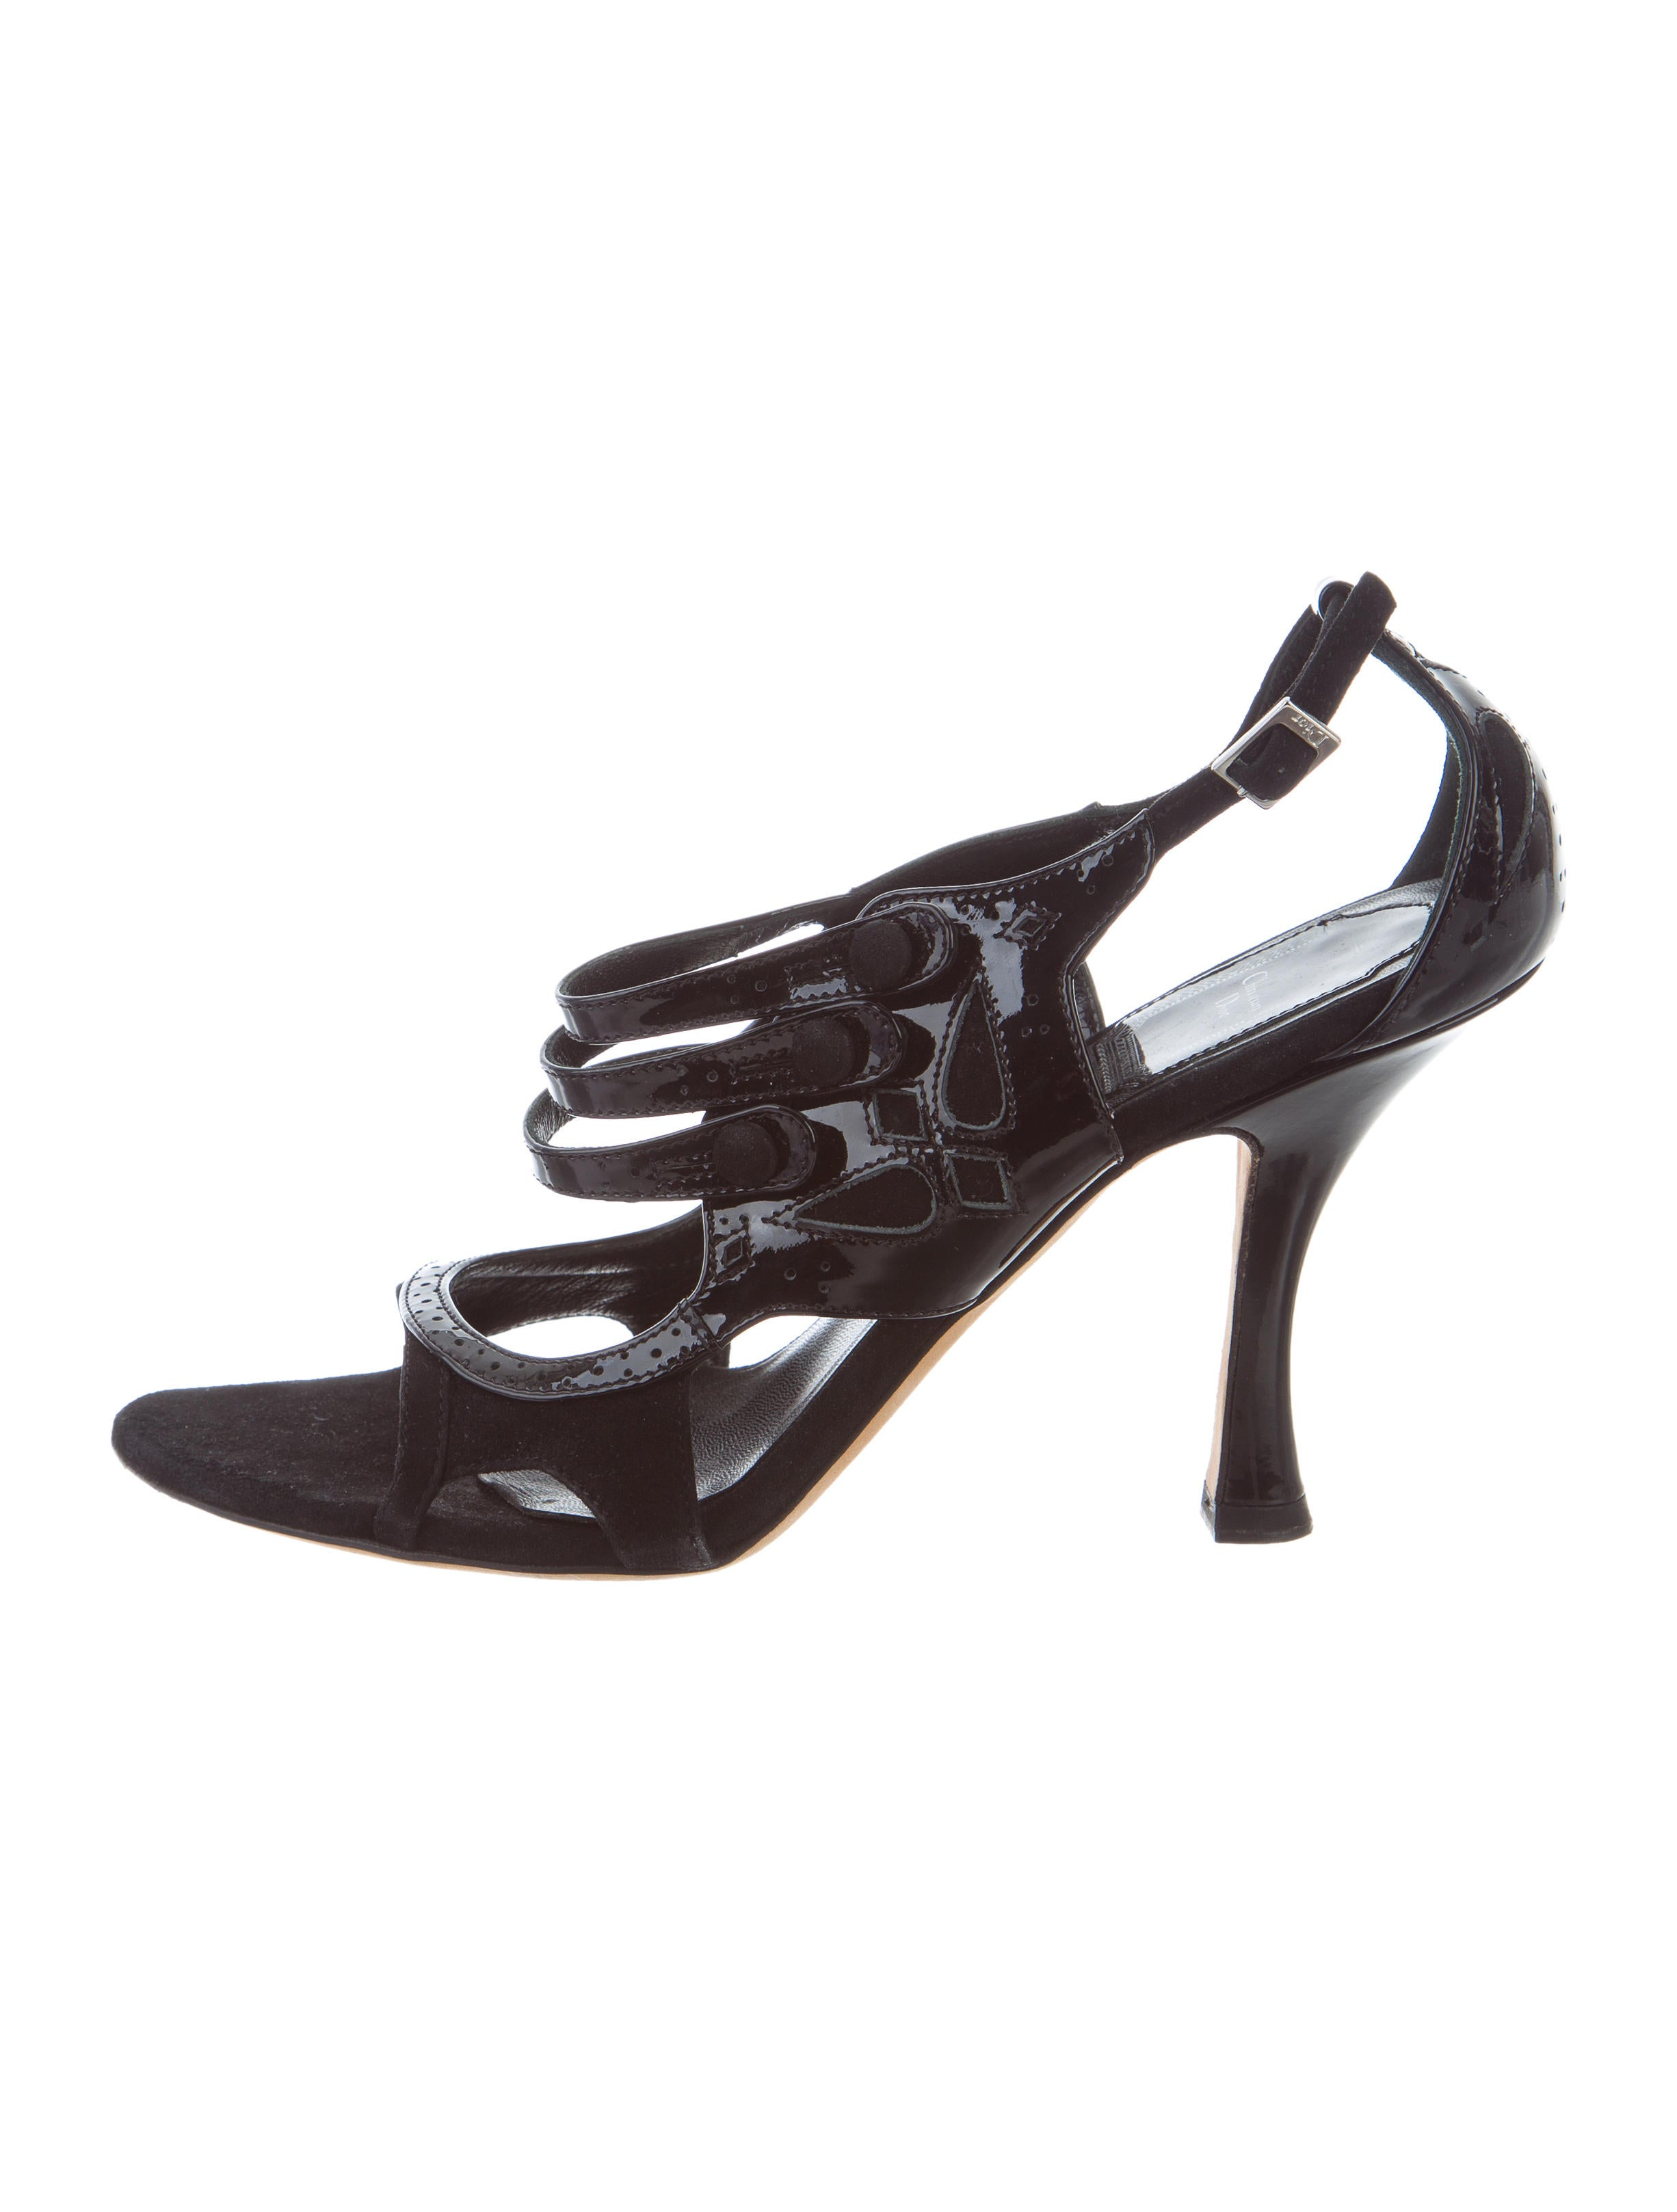 Christian Dior Patent Leather Multistrap Sandals cheap manchester great sale outlet locations for sale buy cheap get to buy buy cheap 100% guaranteed cheap best seller iwZOlX